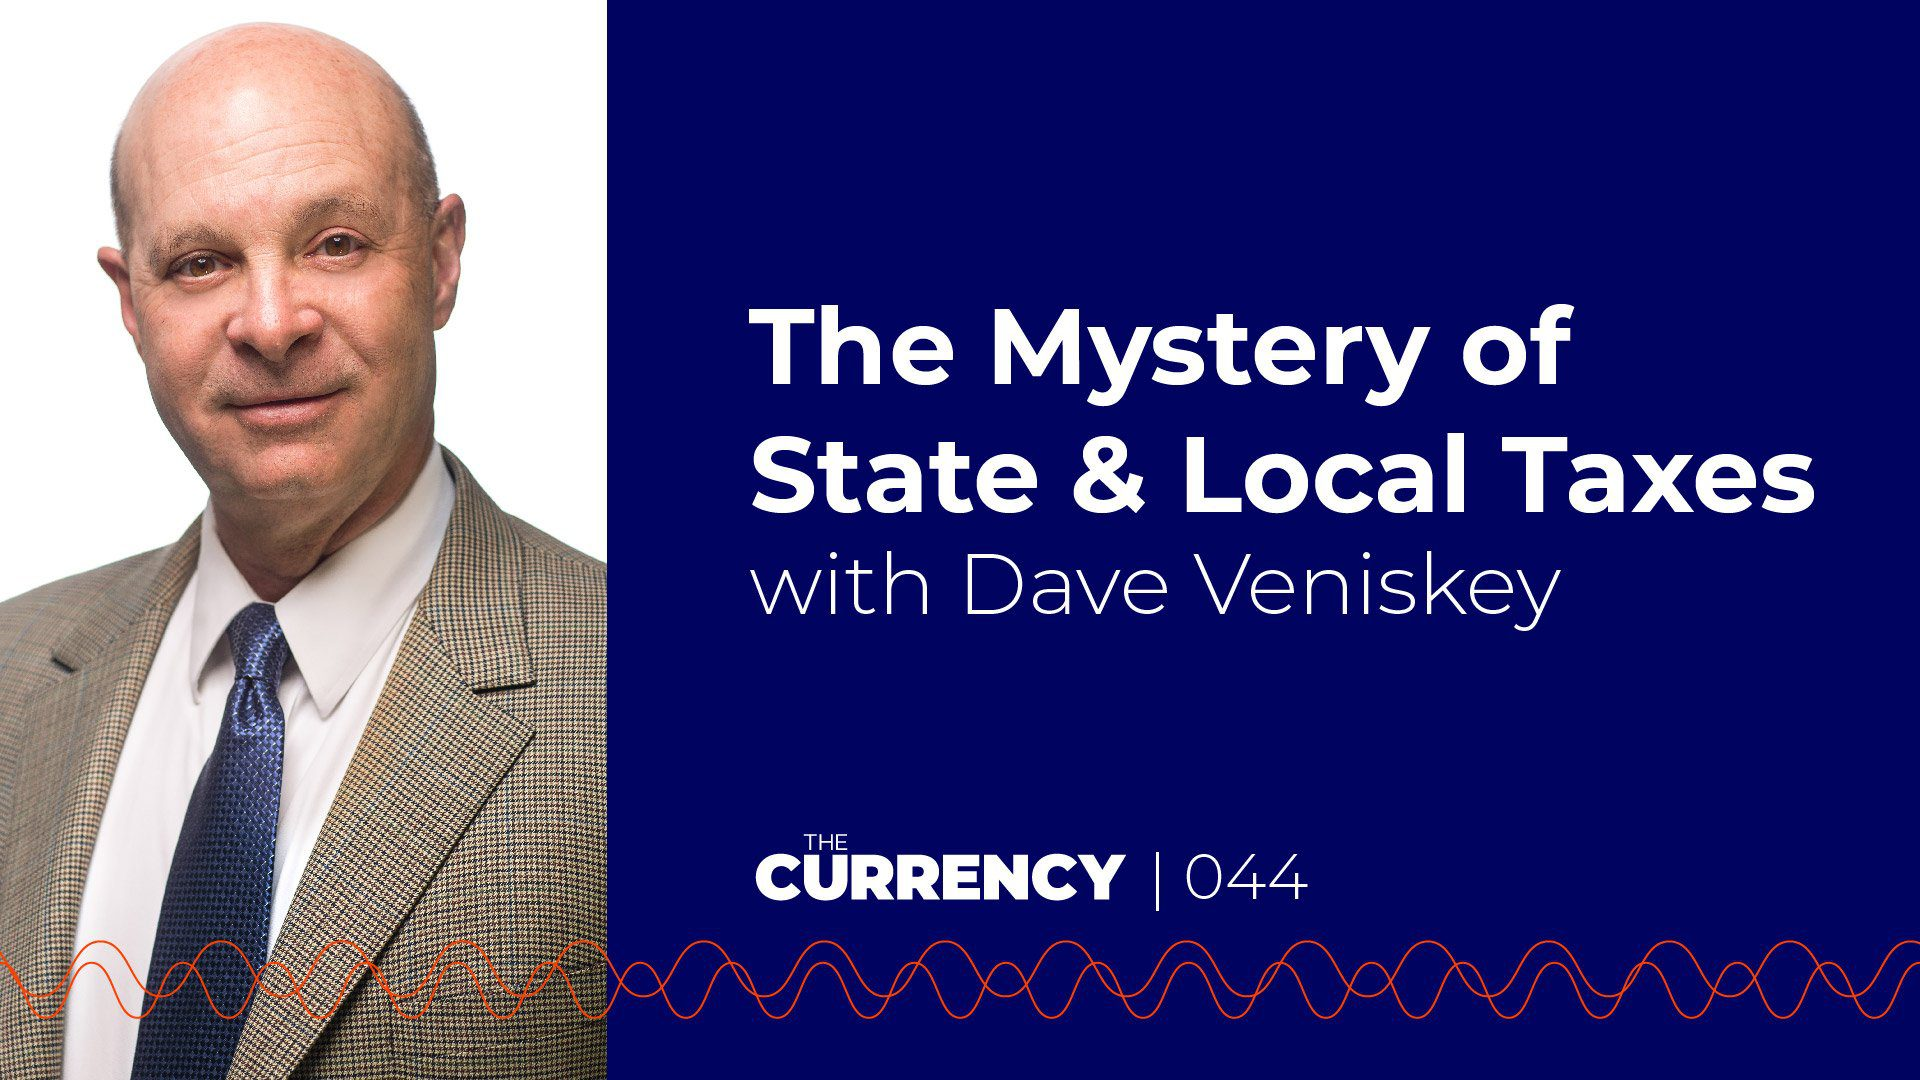 The Currency: [044] The Mystery of State and Local Taxes with Dave Veniskey